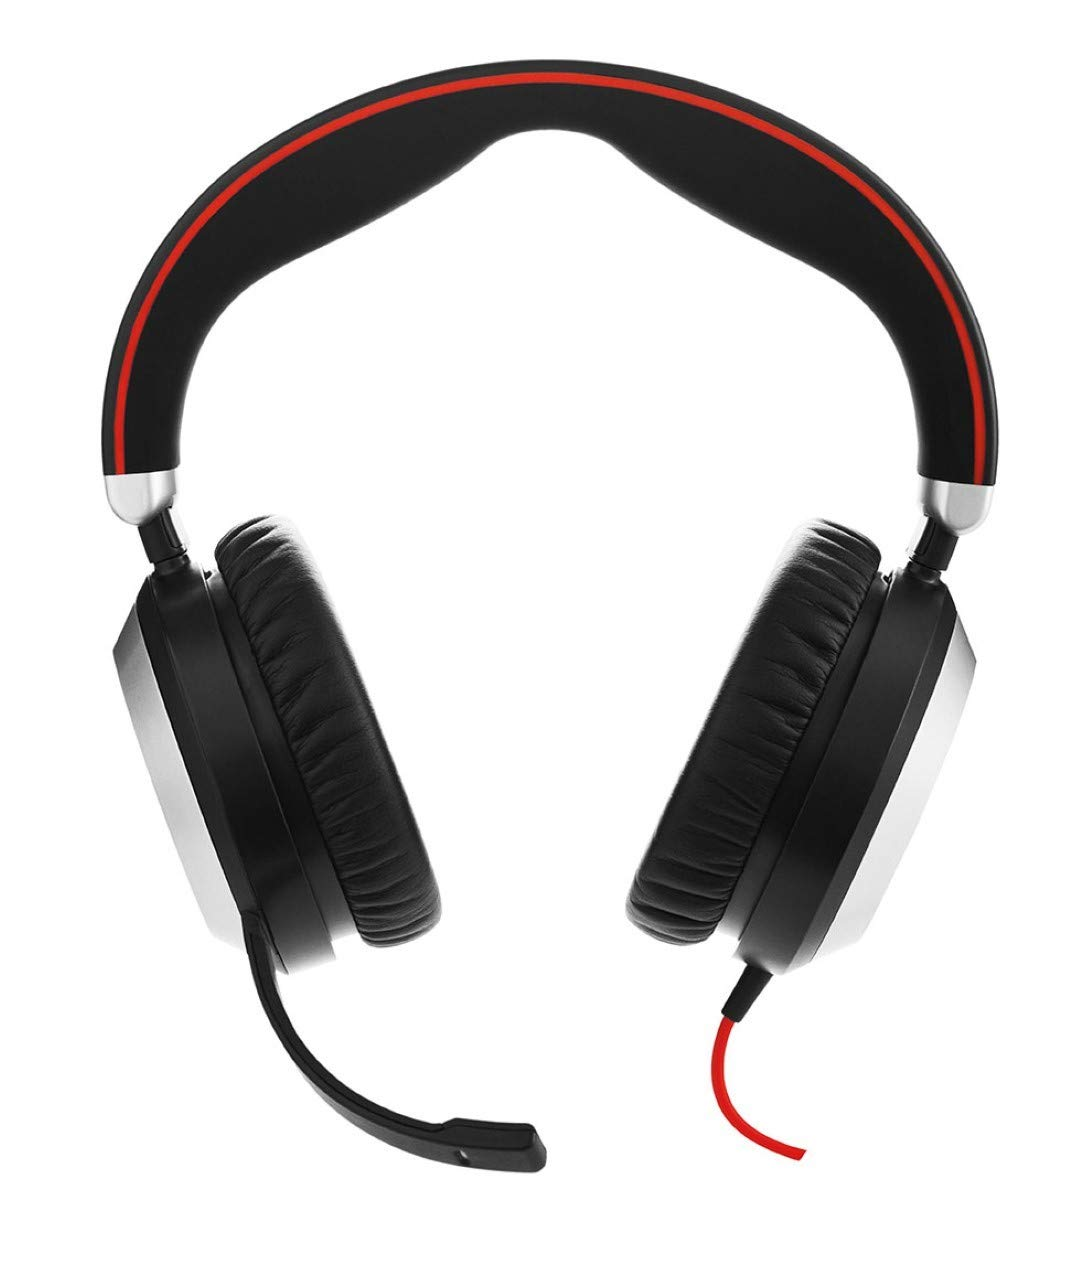 Jabra Evolve 80 - Professional Stereo Noise Cancelling Wired Headset / Music Headphones - MS